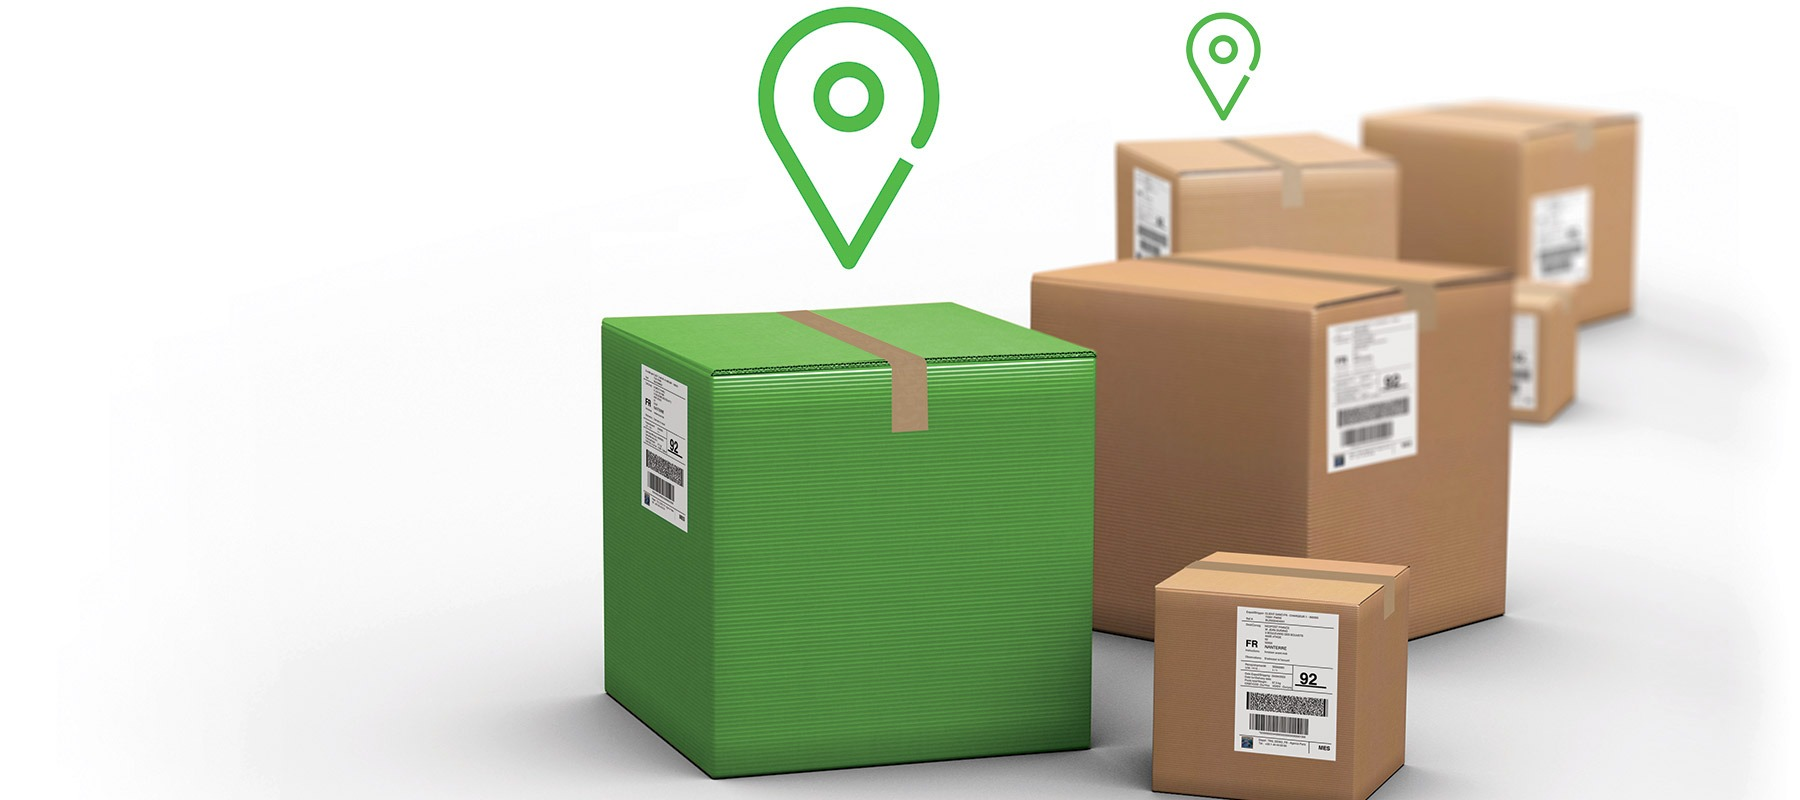 Shipping & Tracking: What Should You Know?